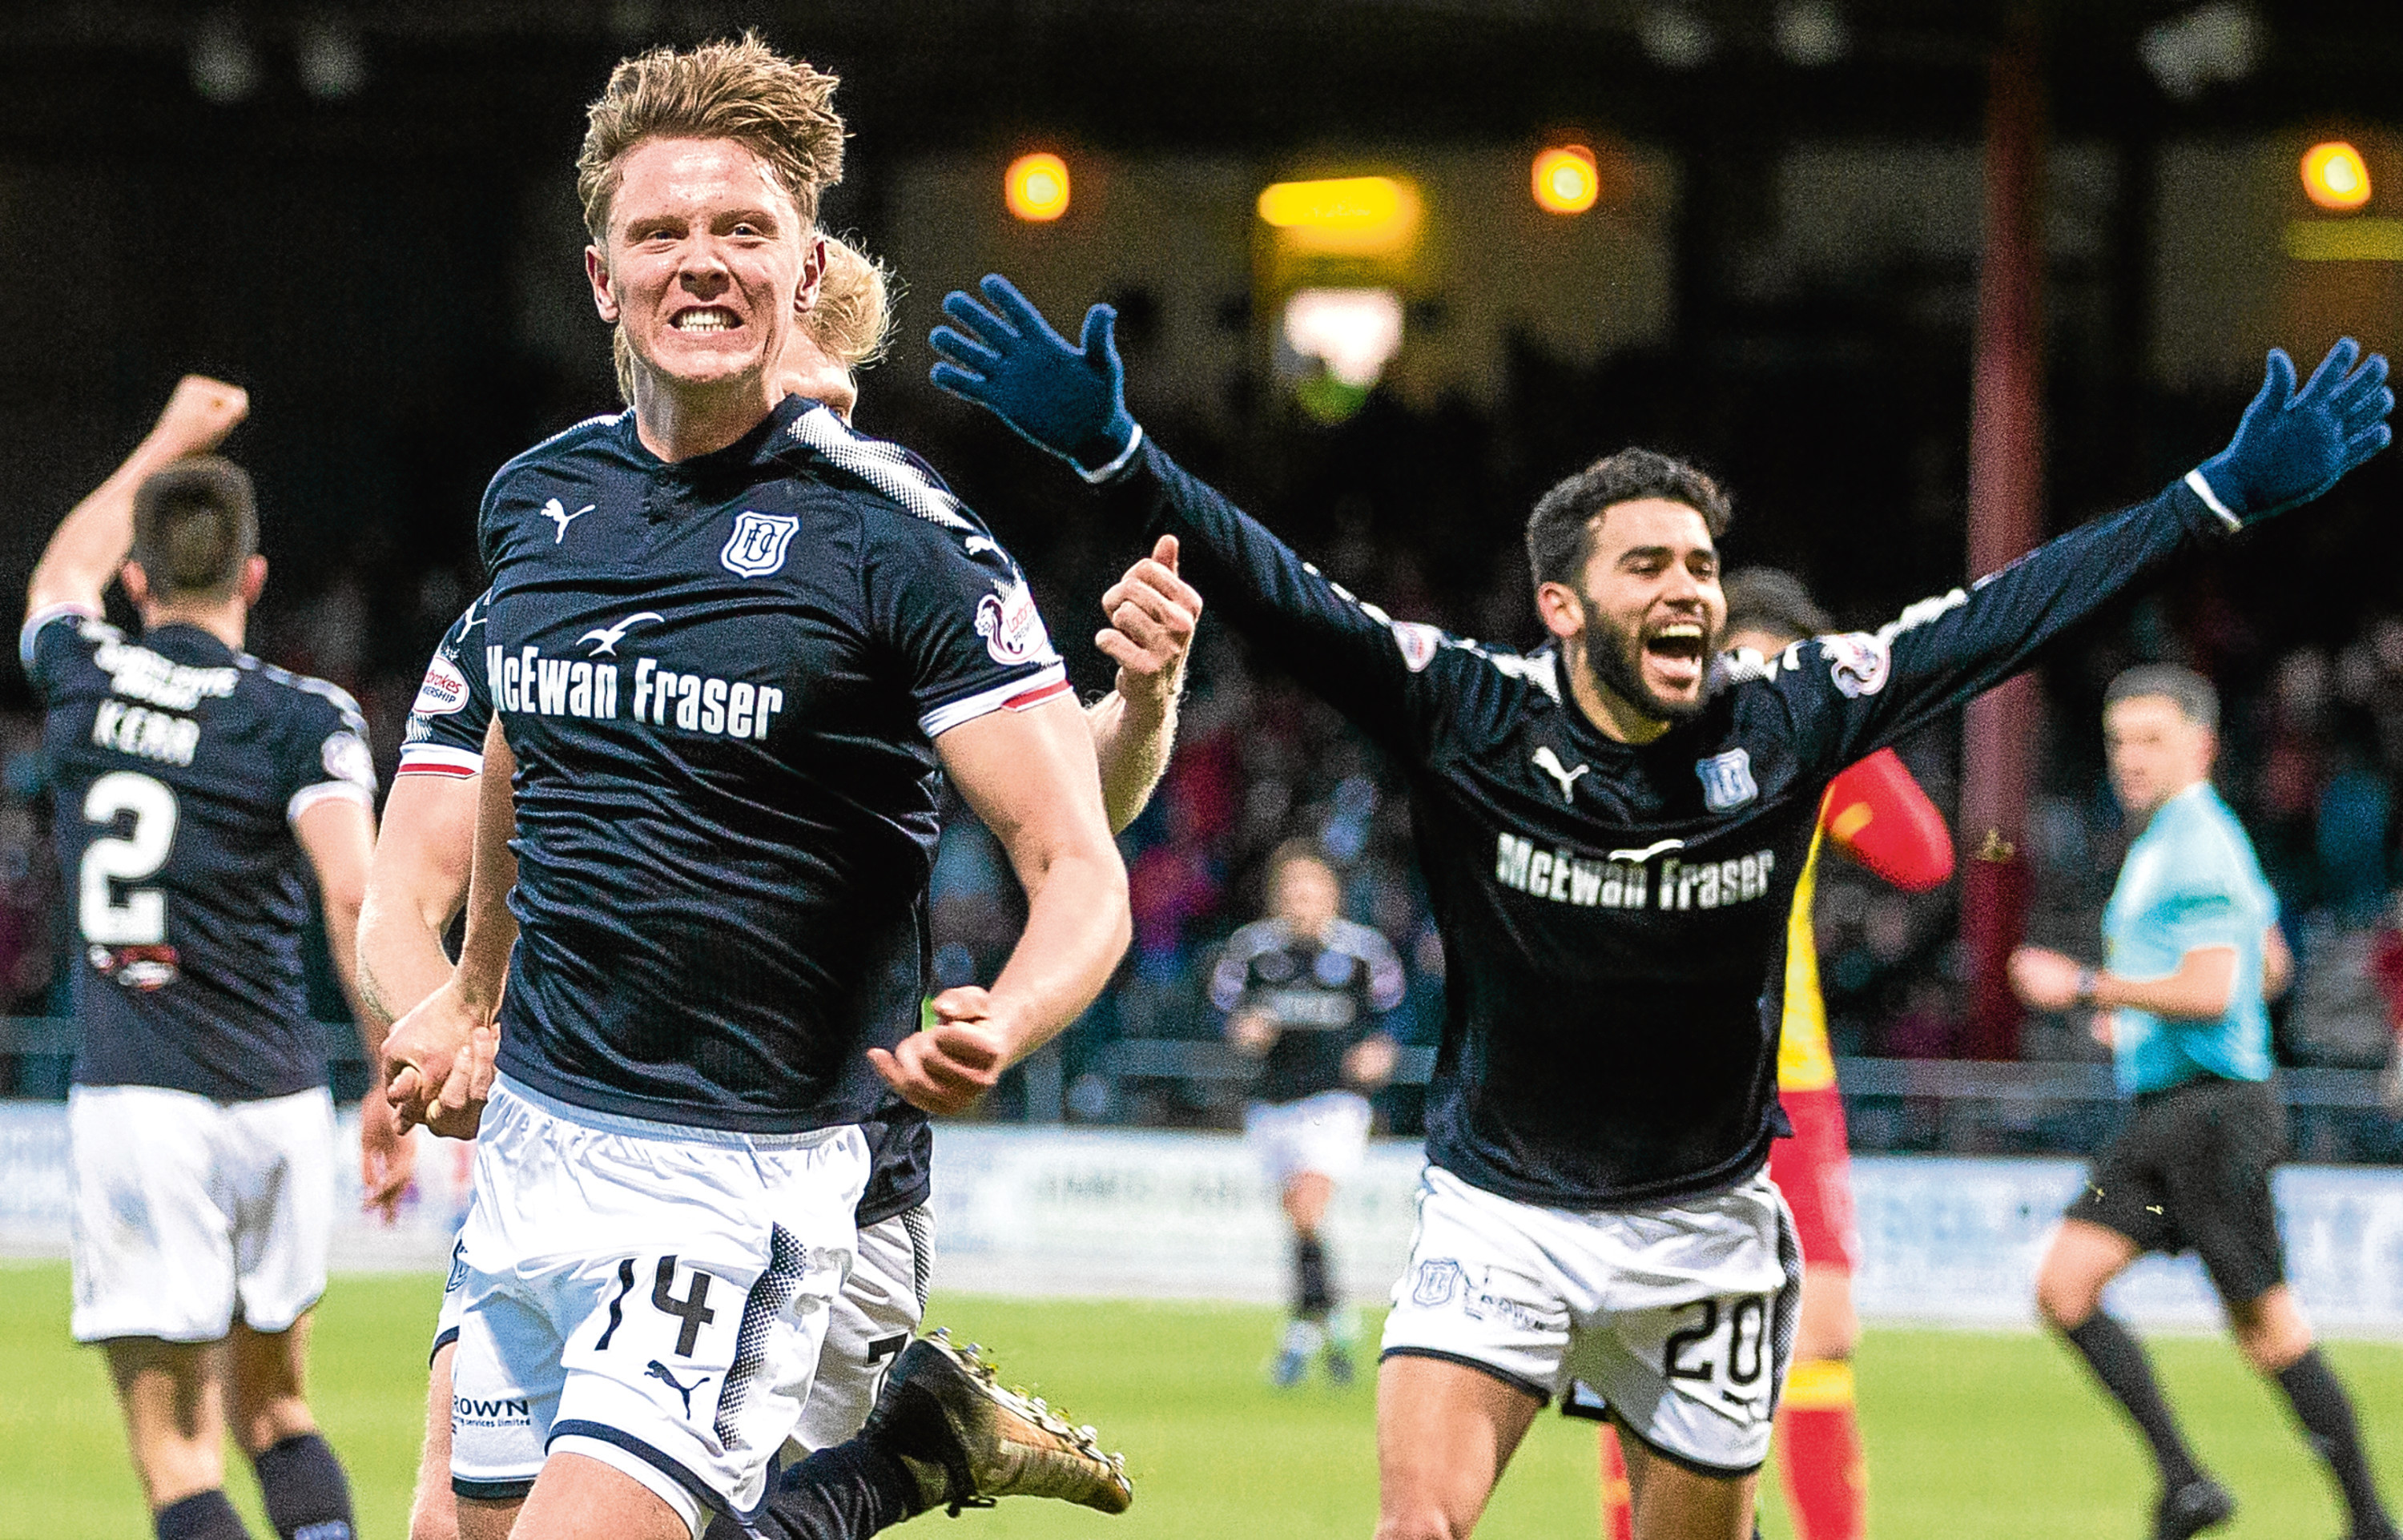 Mark O'Hara says he's enjoying himself at Dundee and is hoping to sort out a new contract in the near future.